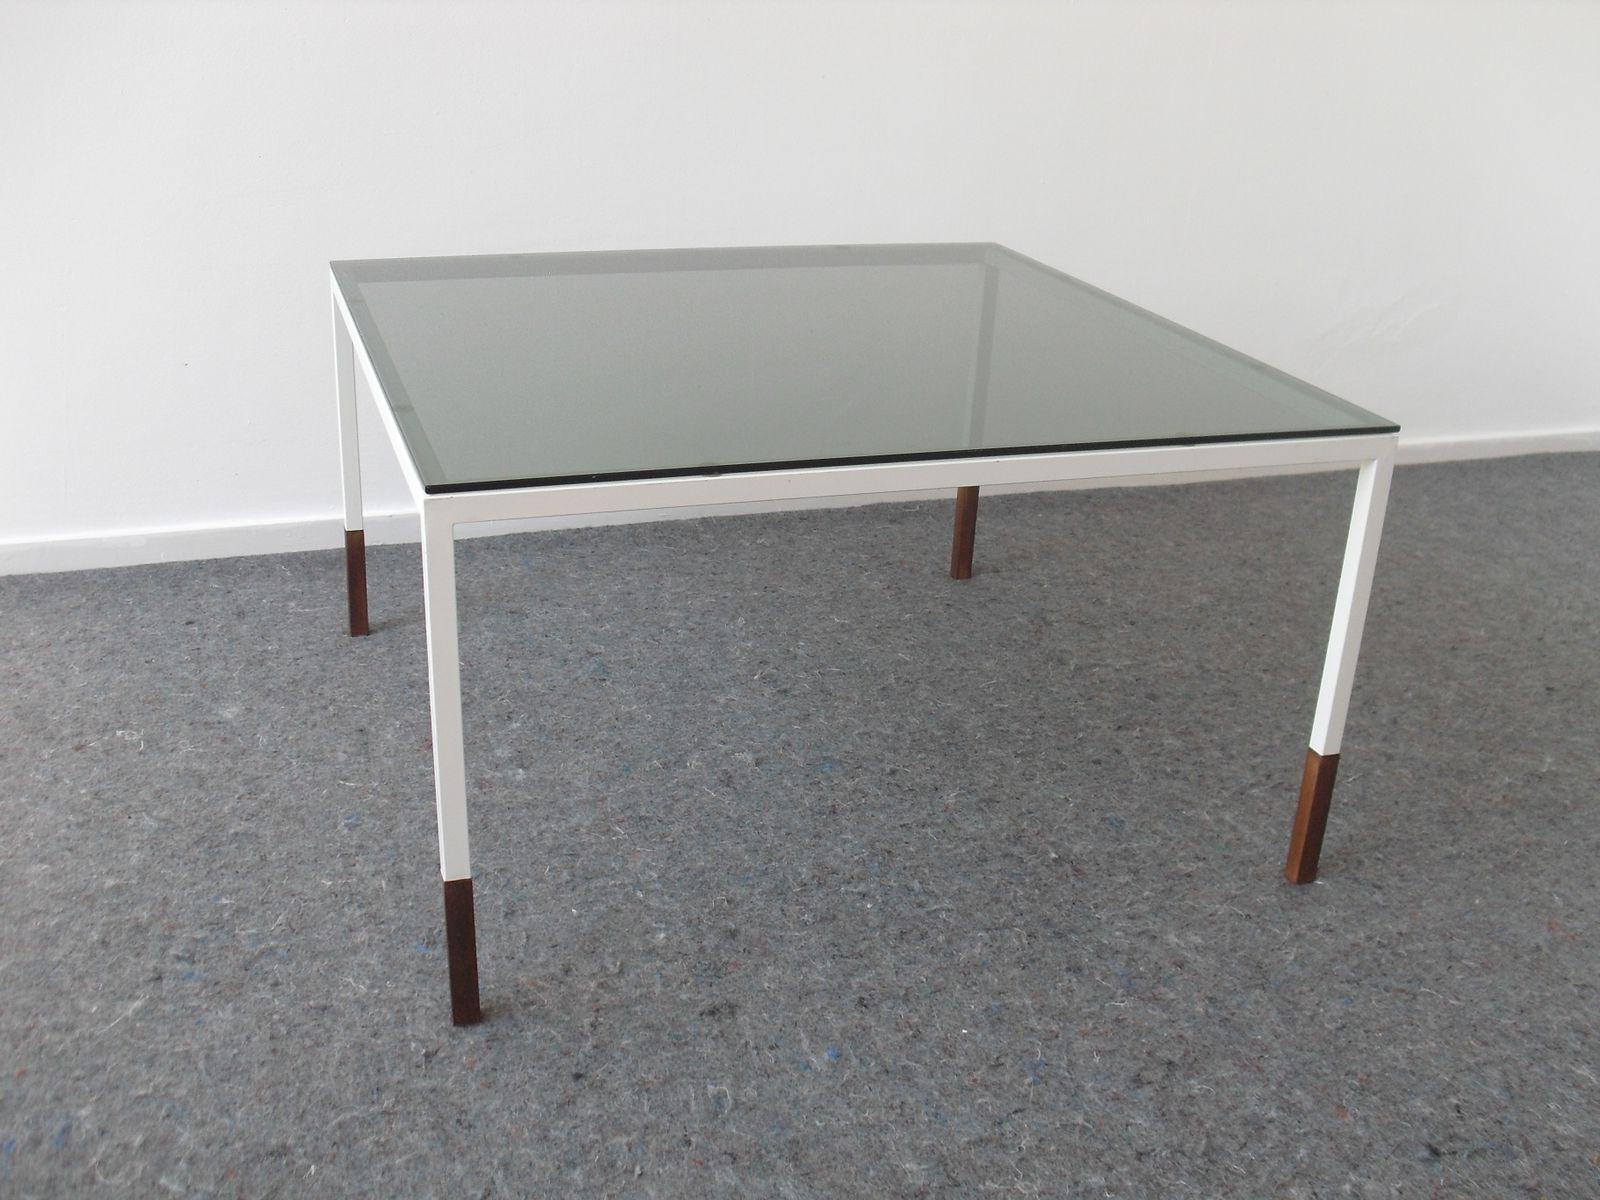 Minimalist Coffee Tables Within Fashionable Dutch Minimalist Coffee Table, 1960S For Sale At Pamono (View 11 of 20)